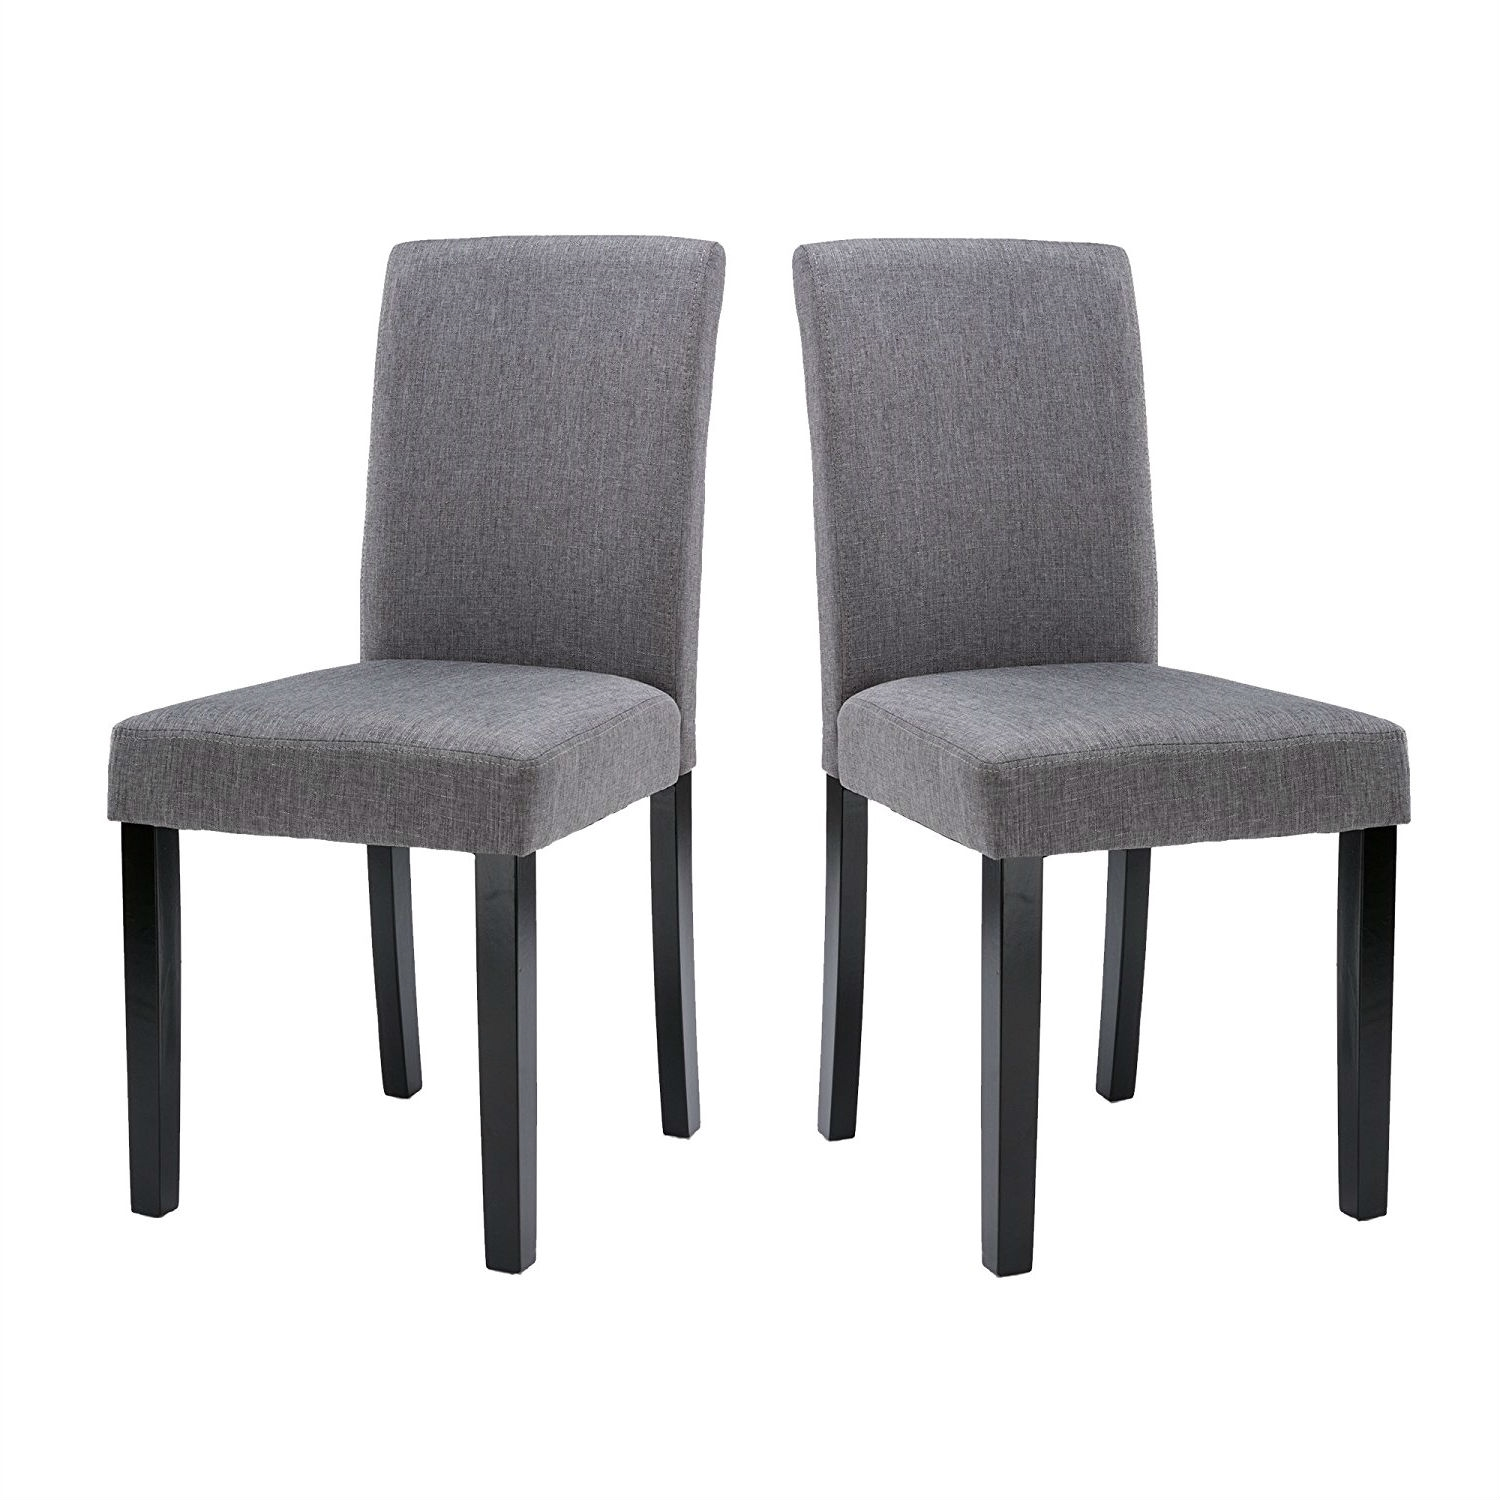 Outstanding Set Of 2 Grey Fabric Dining Chairs With Black Wood Legs Ncnpc Chair Design For Home Ncnpcorg